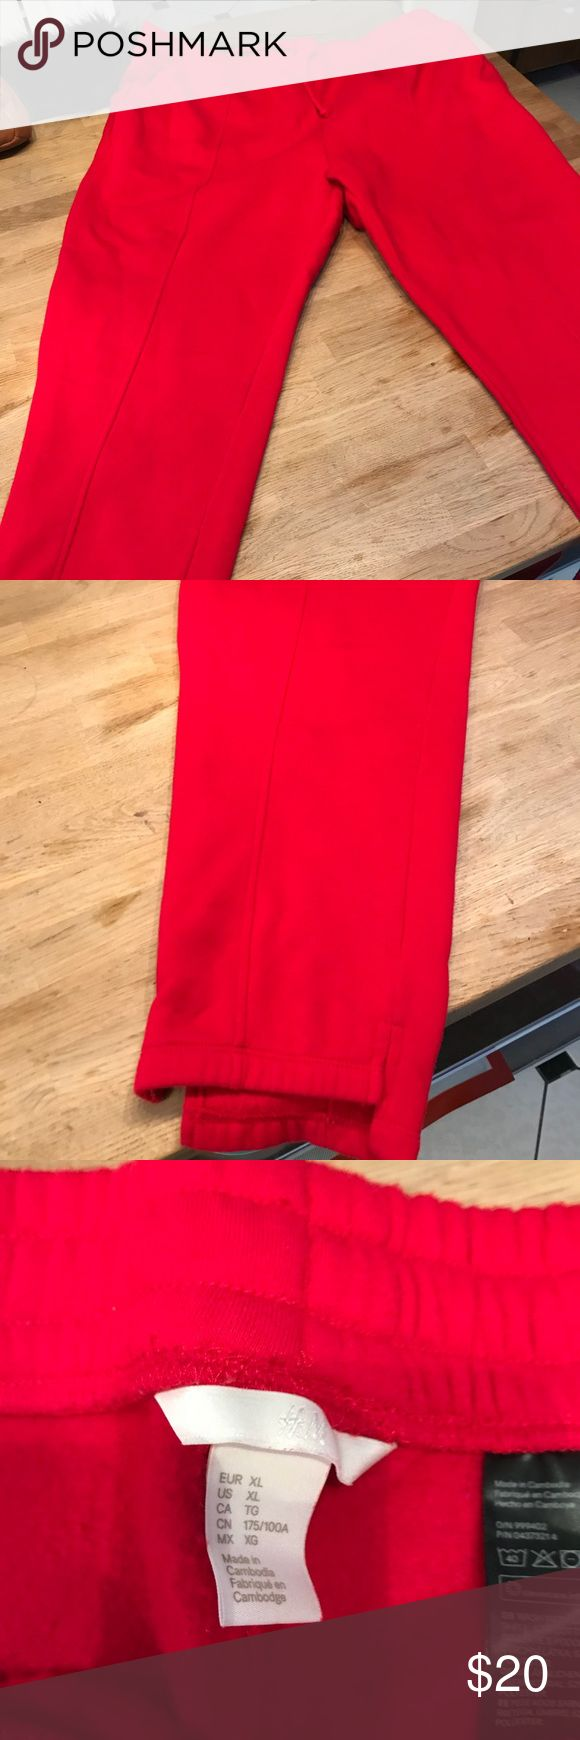 H&M red joggers xl Worn twice. H &M cozy joggers. A roomy relaxed fit for a cozy winter day. No smoke or pets. H&M Pants Track Pants & Joggers